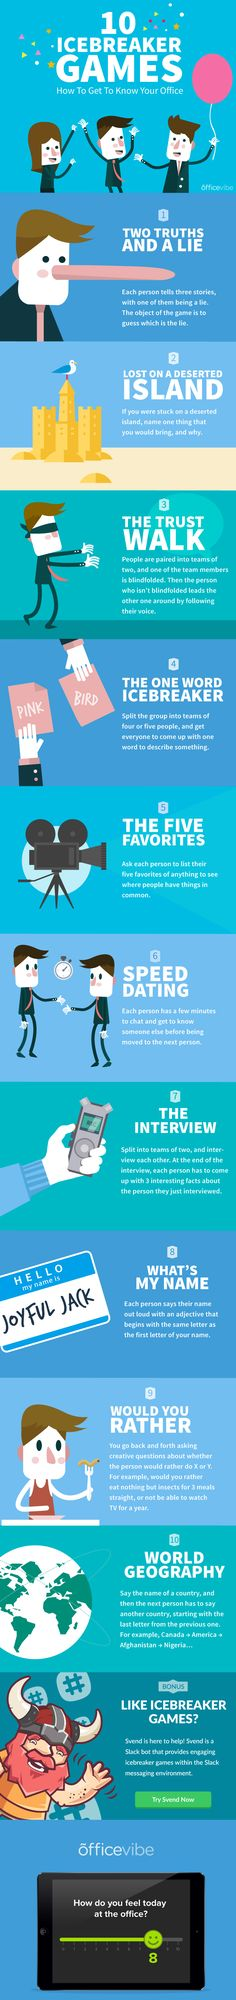 10 Icebreaker Office Games Infographic - http://elearninginfographics.com/10-icebreaker-office-games-infographic/